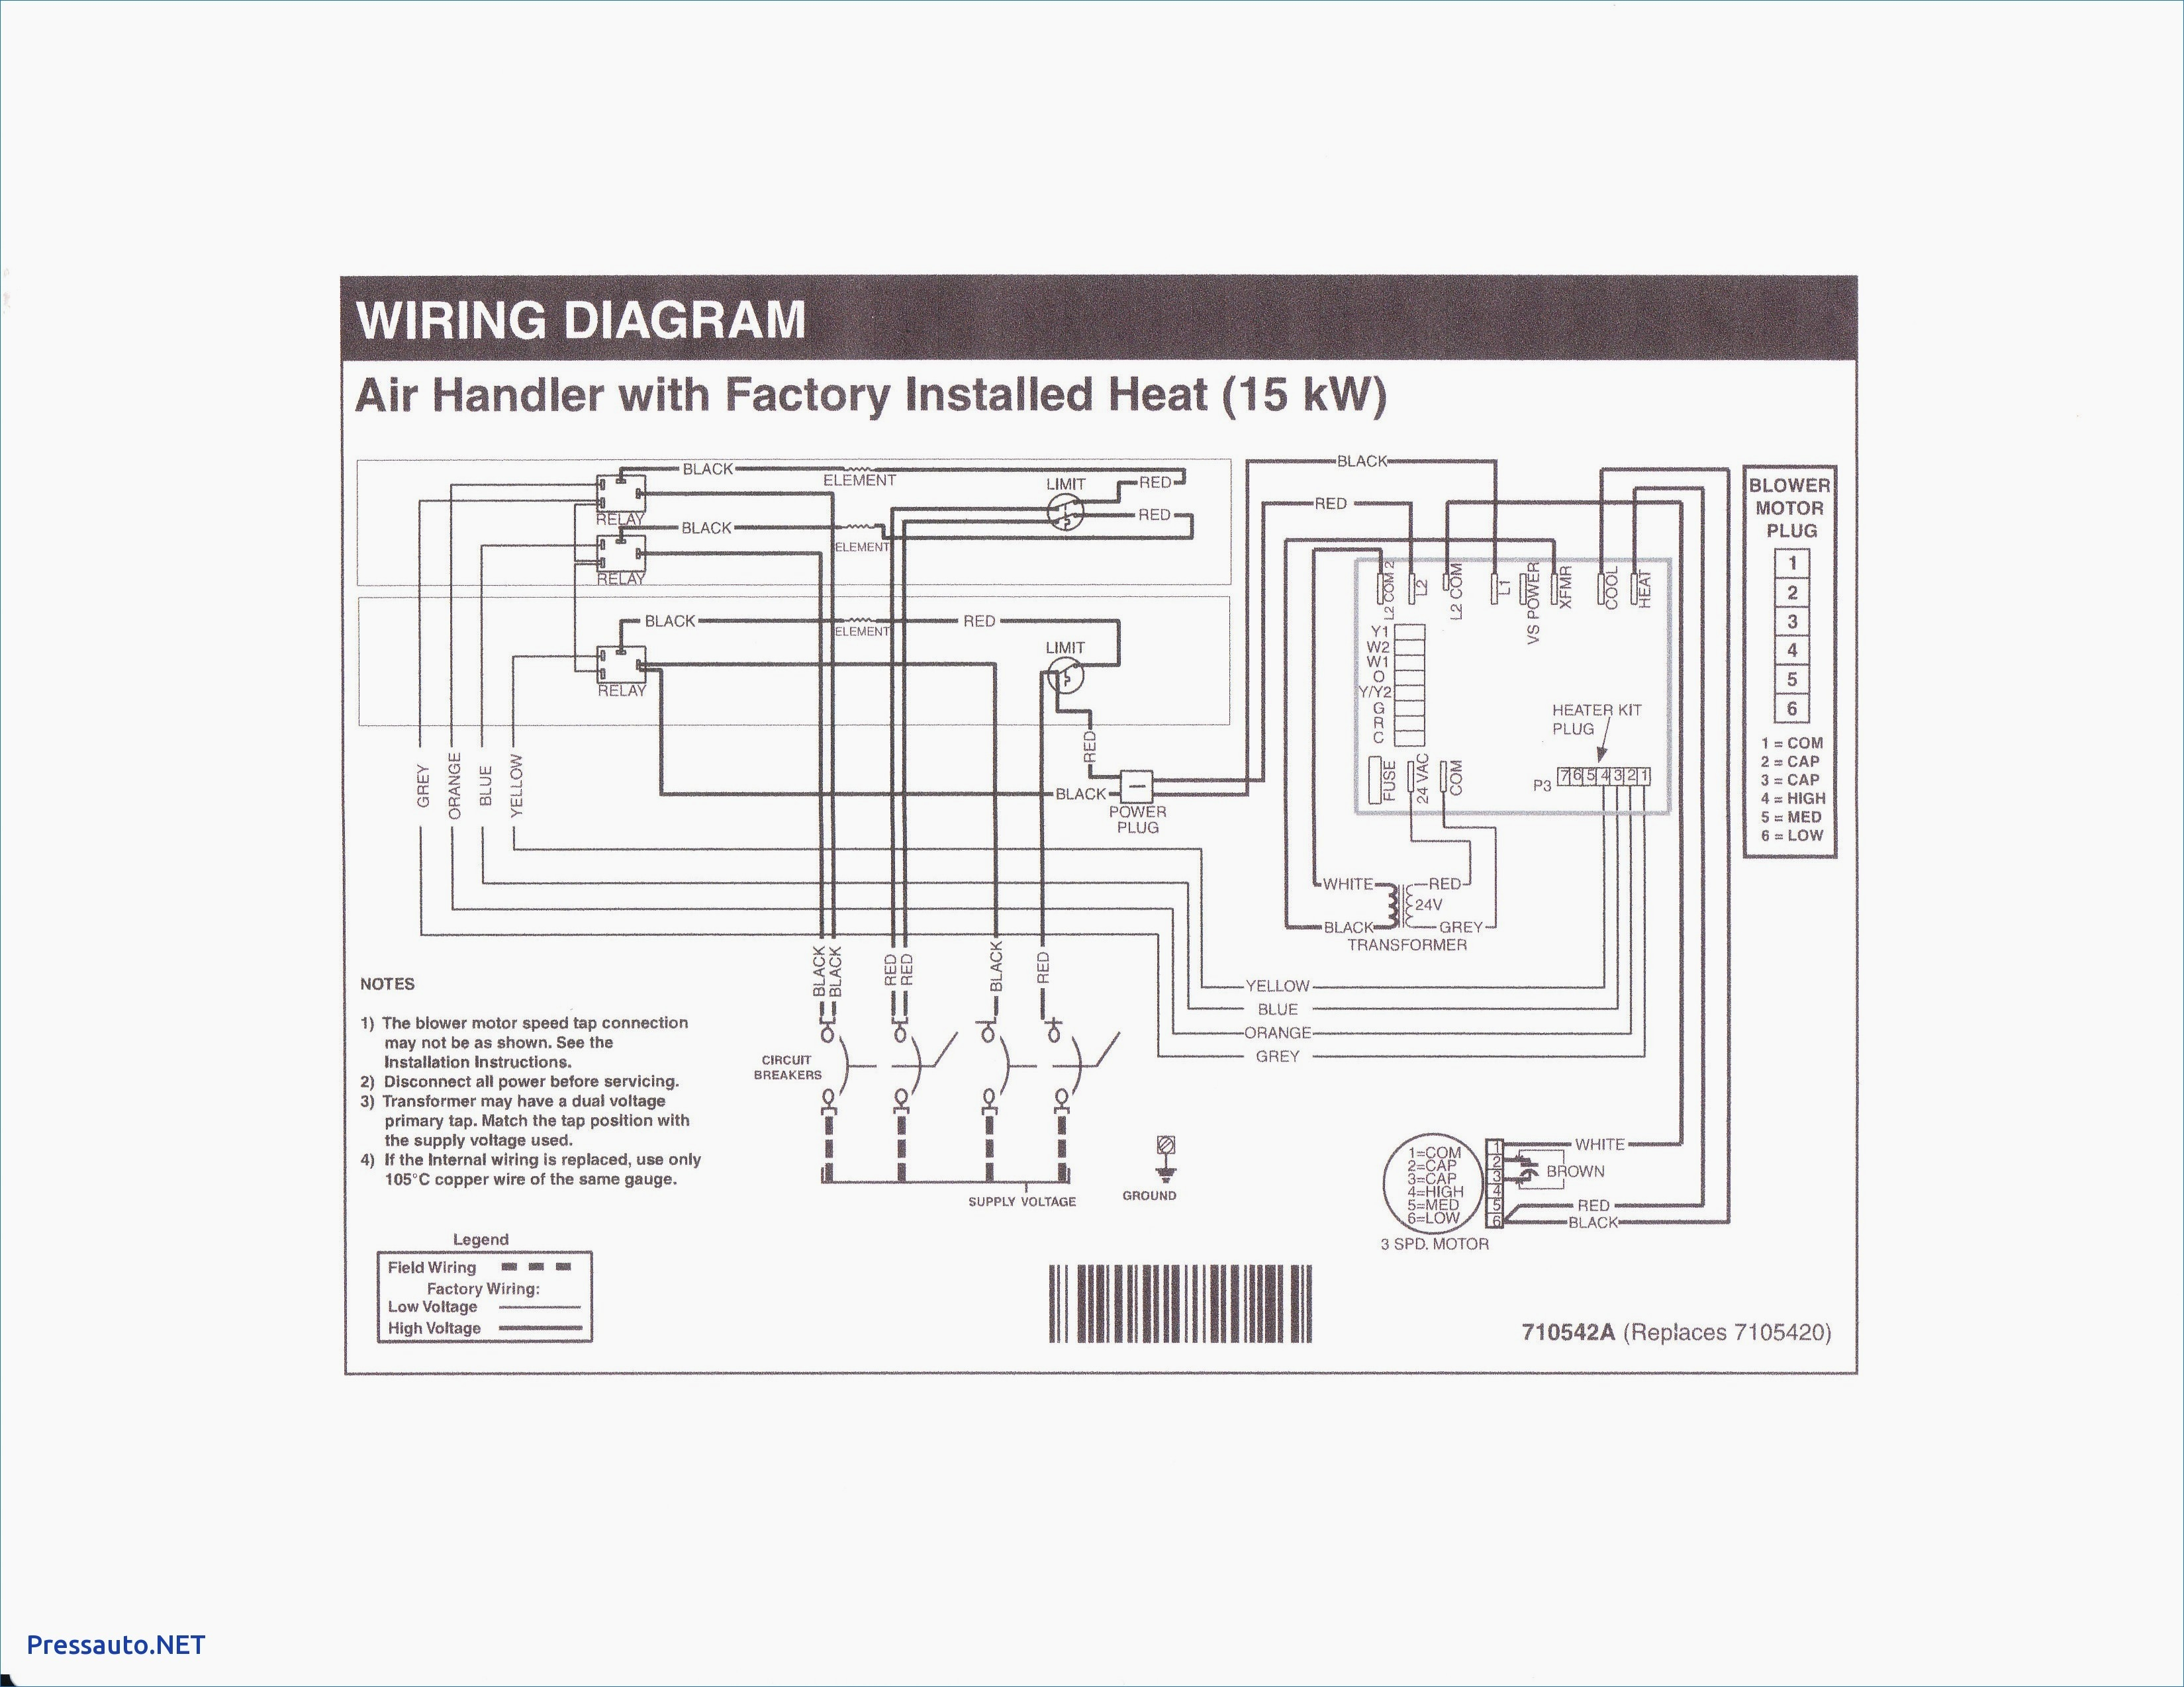 Wiring Diagram For Mobile Home Furnace | Wiring Diagram